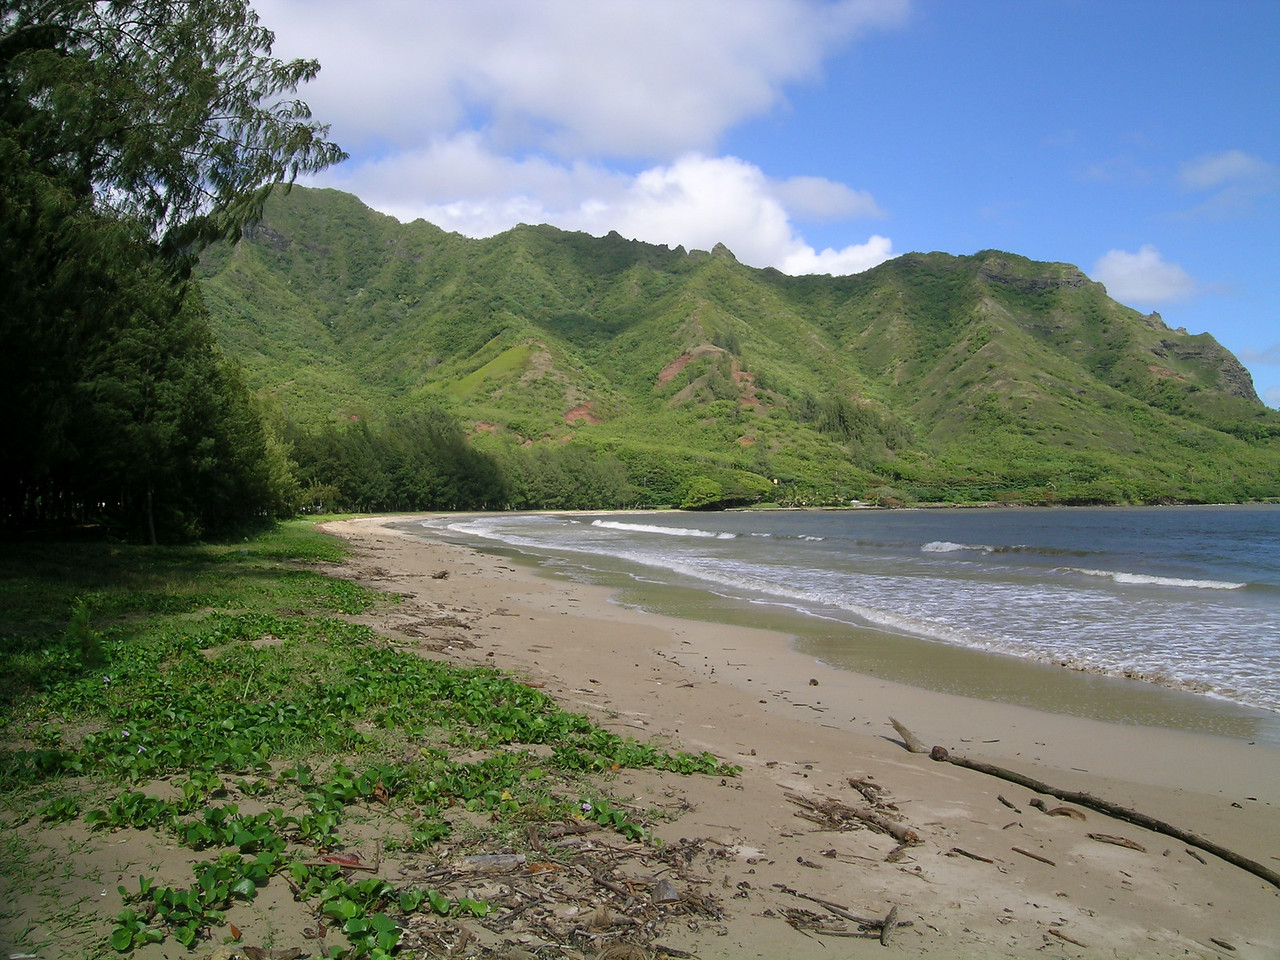 Kahana park peach probably about a mile north of us